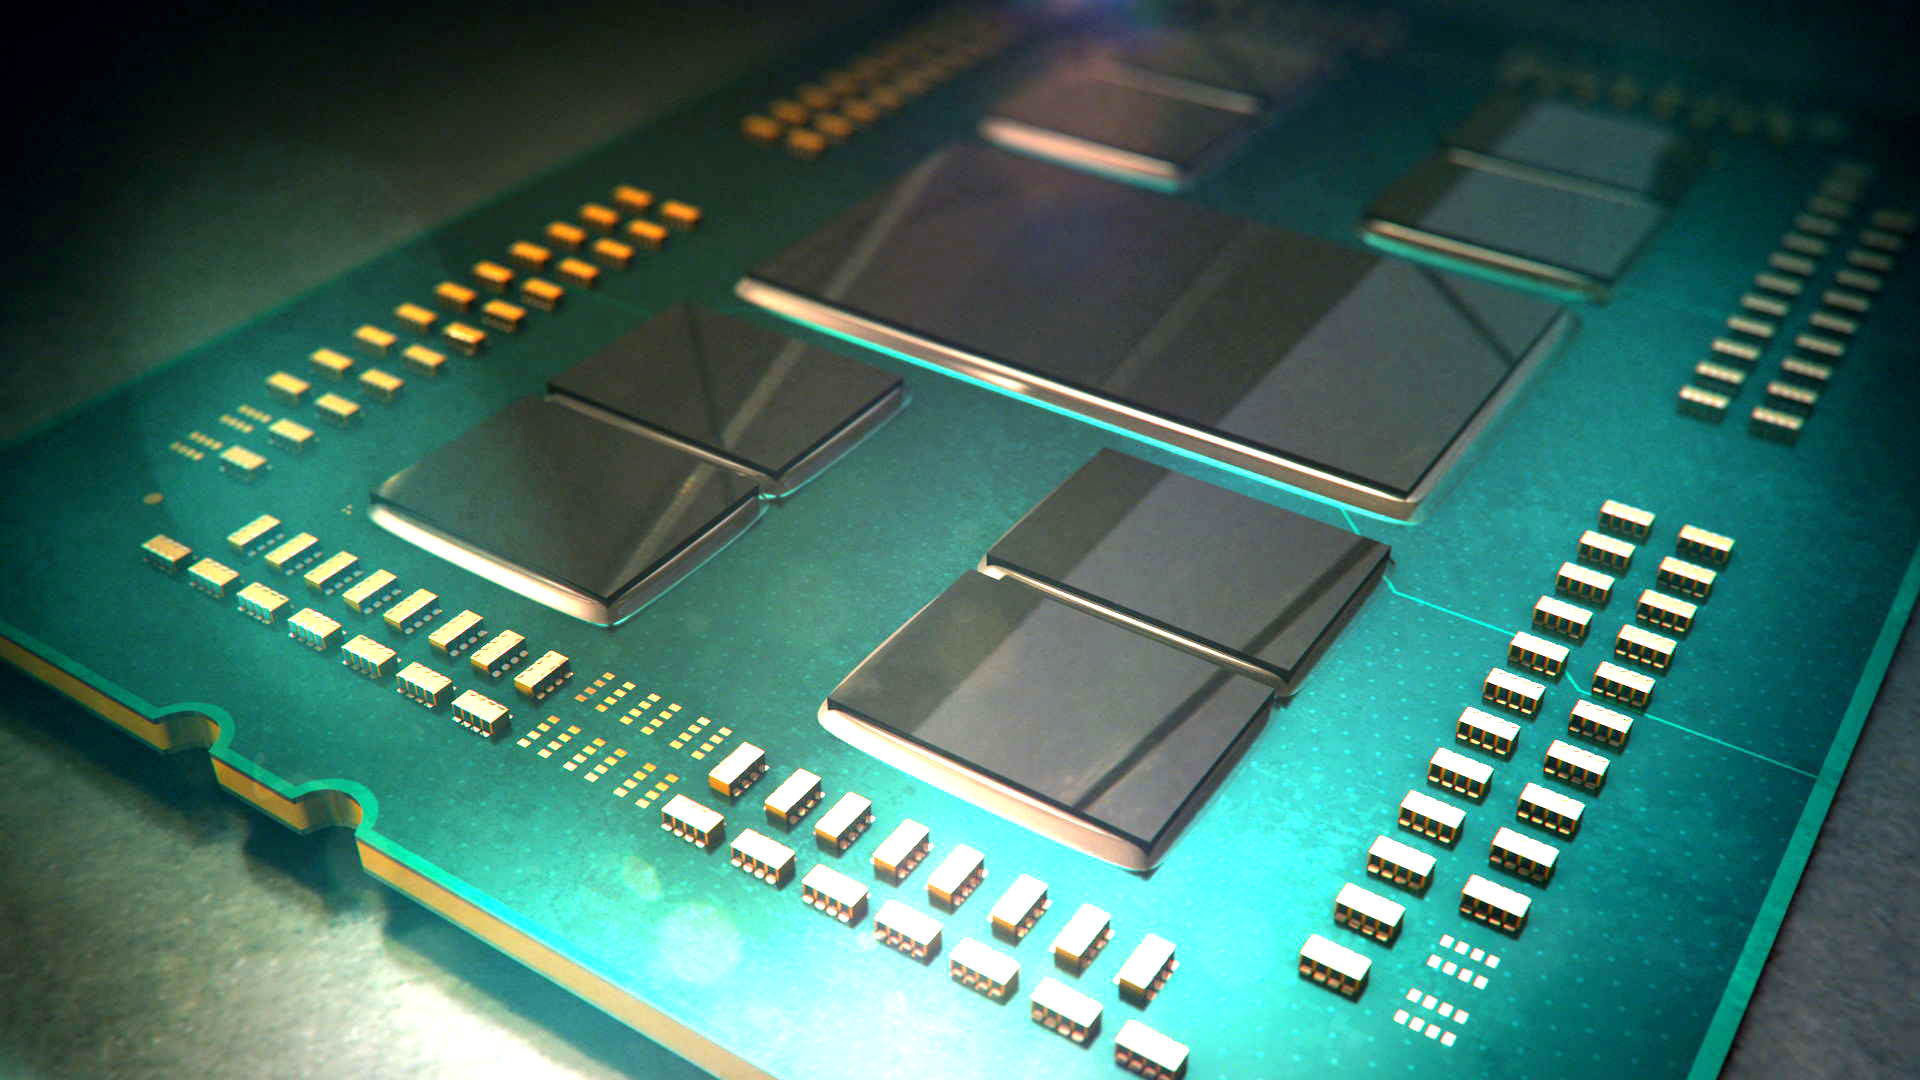 AMD could follow in Nvidia's steps with dedicated mining cards